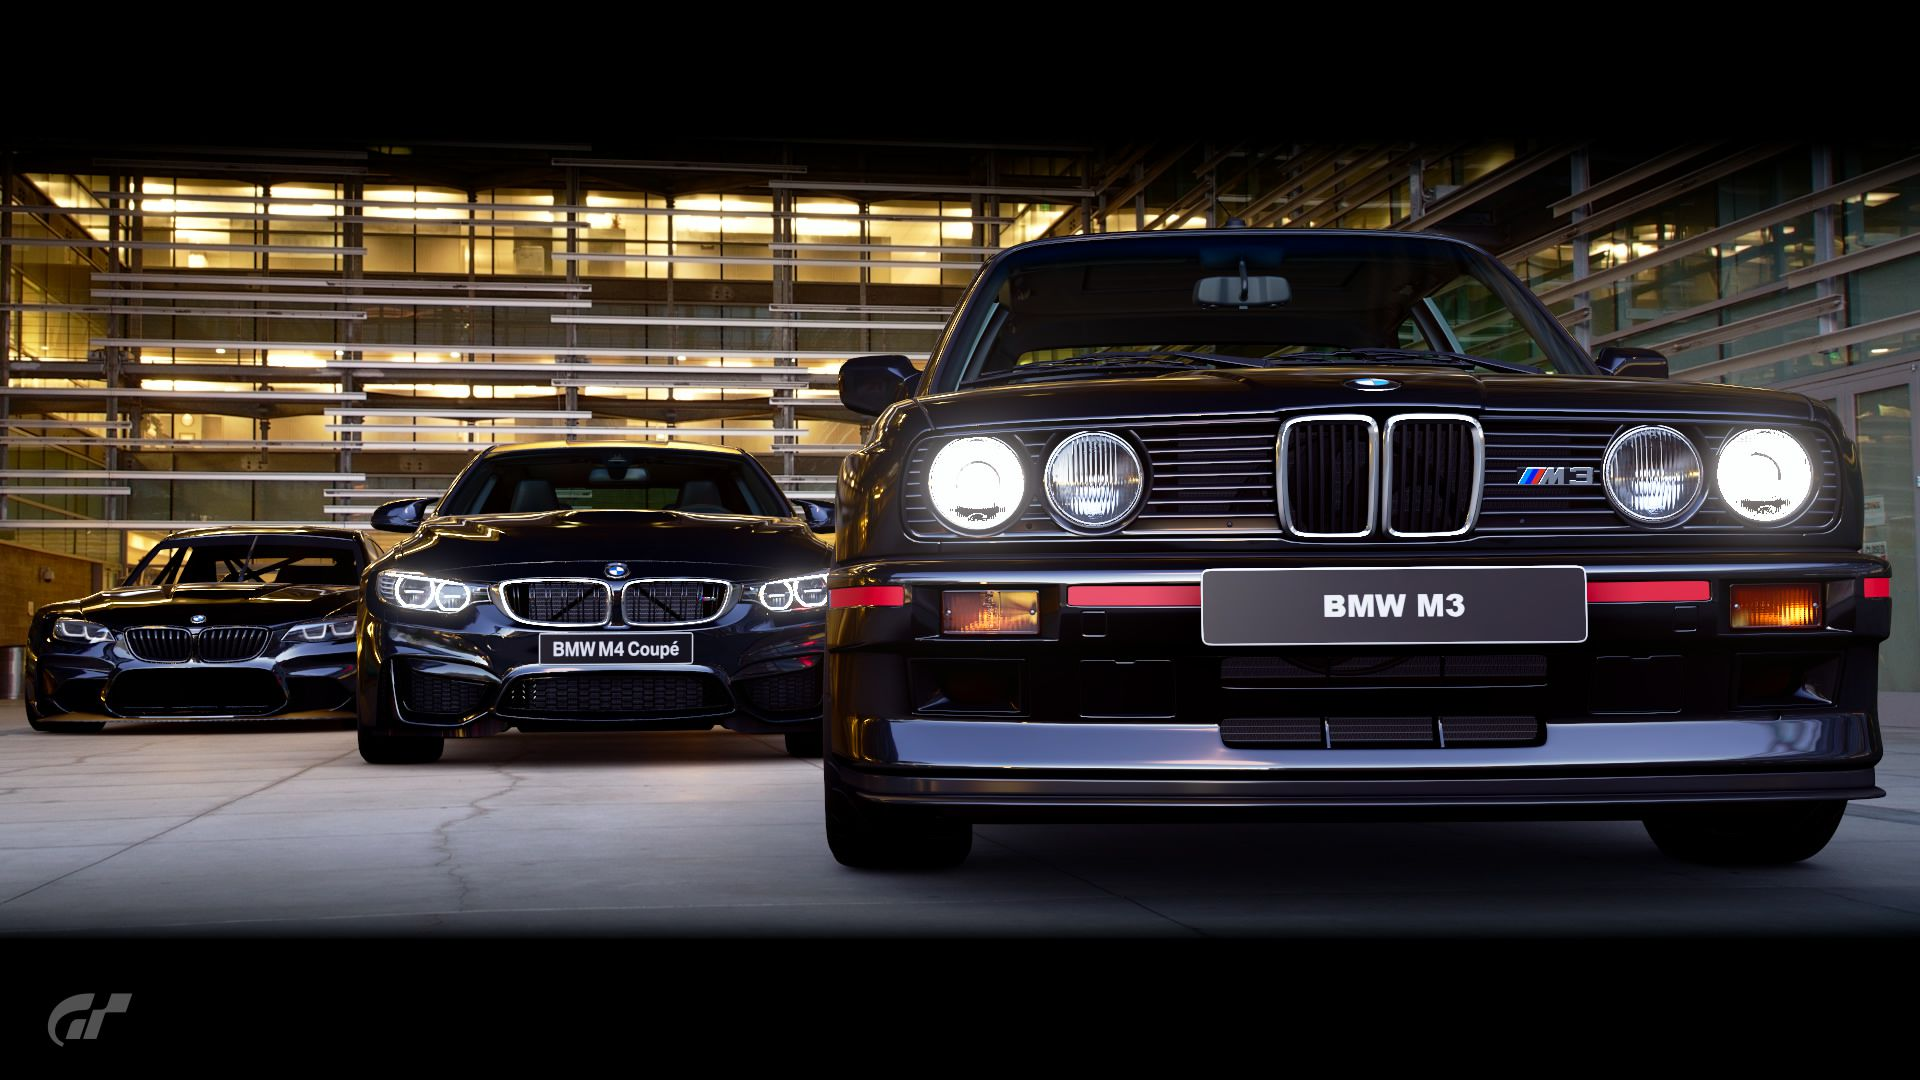 Evolution - BMW M3 e30 and BMW M$ coupe